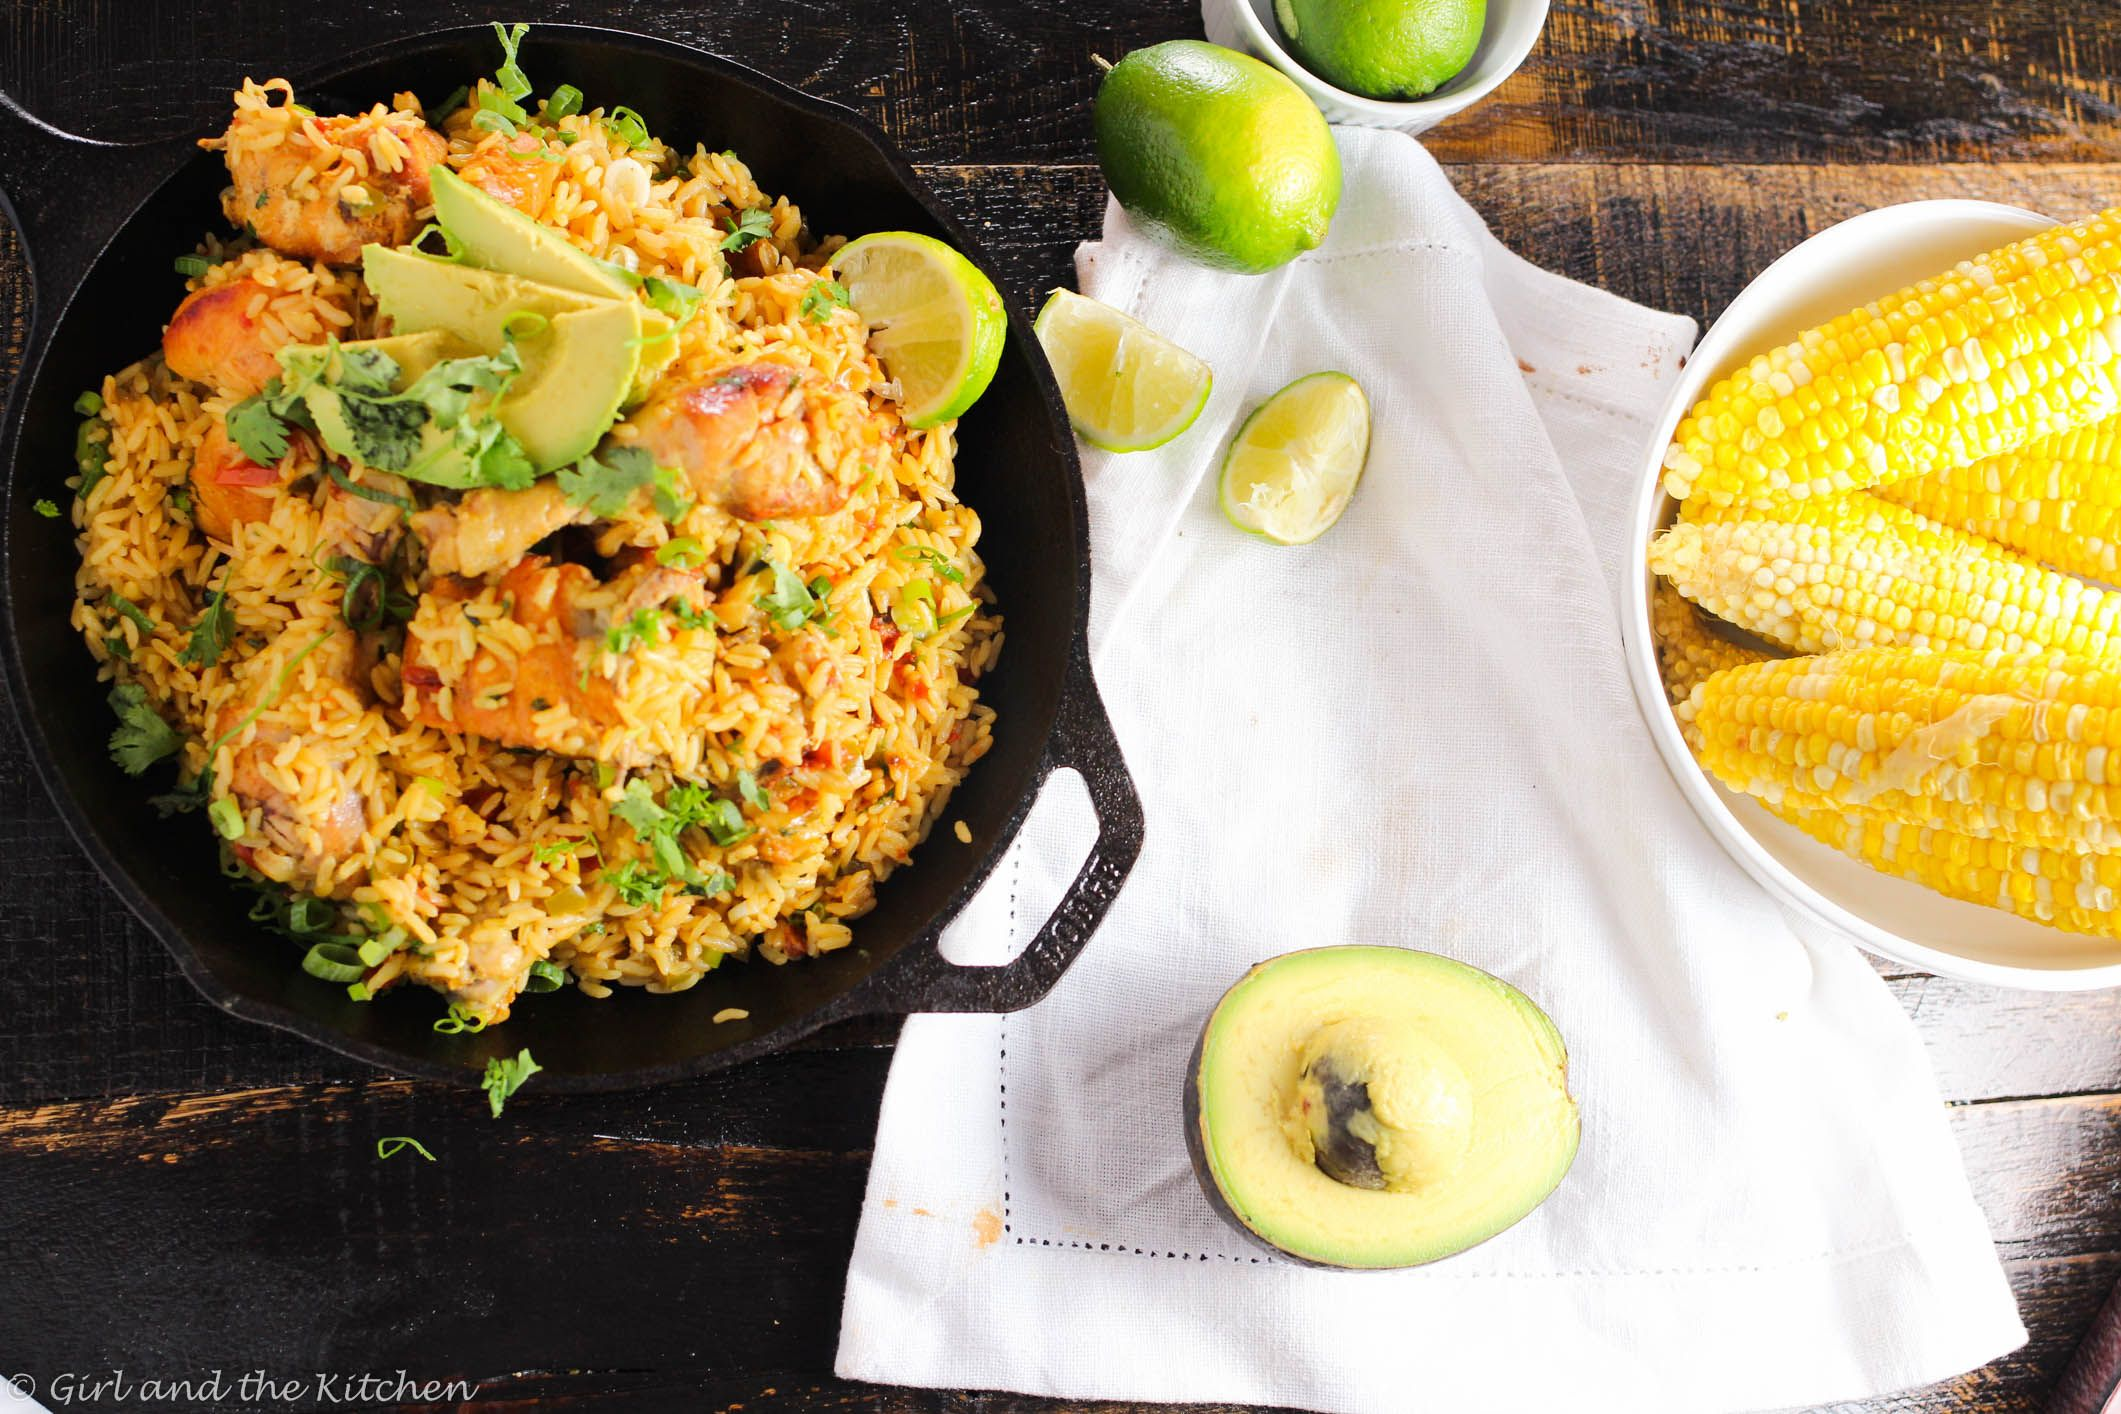 Arroz con Pollo is literally translated to Rice and Chicken in Spanish. Arroz con Pollo is popular among almost all Latin countries and it is a classic feel good meal for me. Full of aromatics, tender rice and succulent chicken on the bone, this dish is my go-to comfort food.